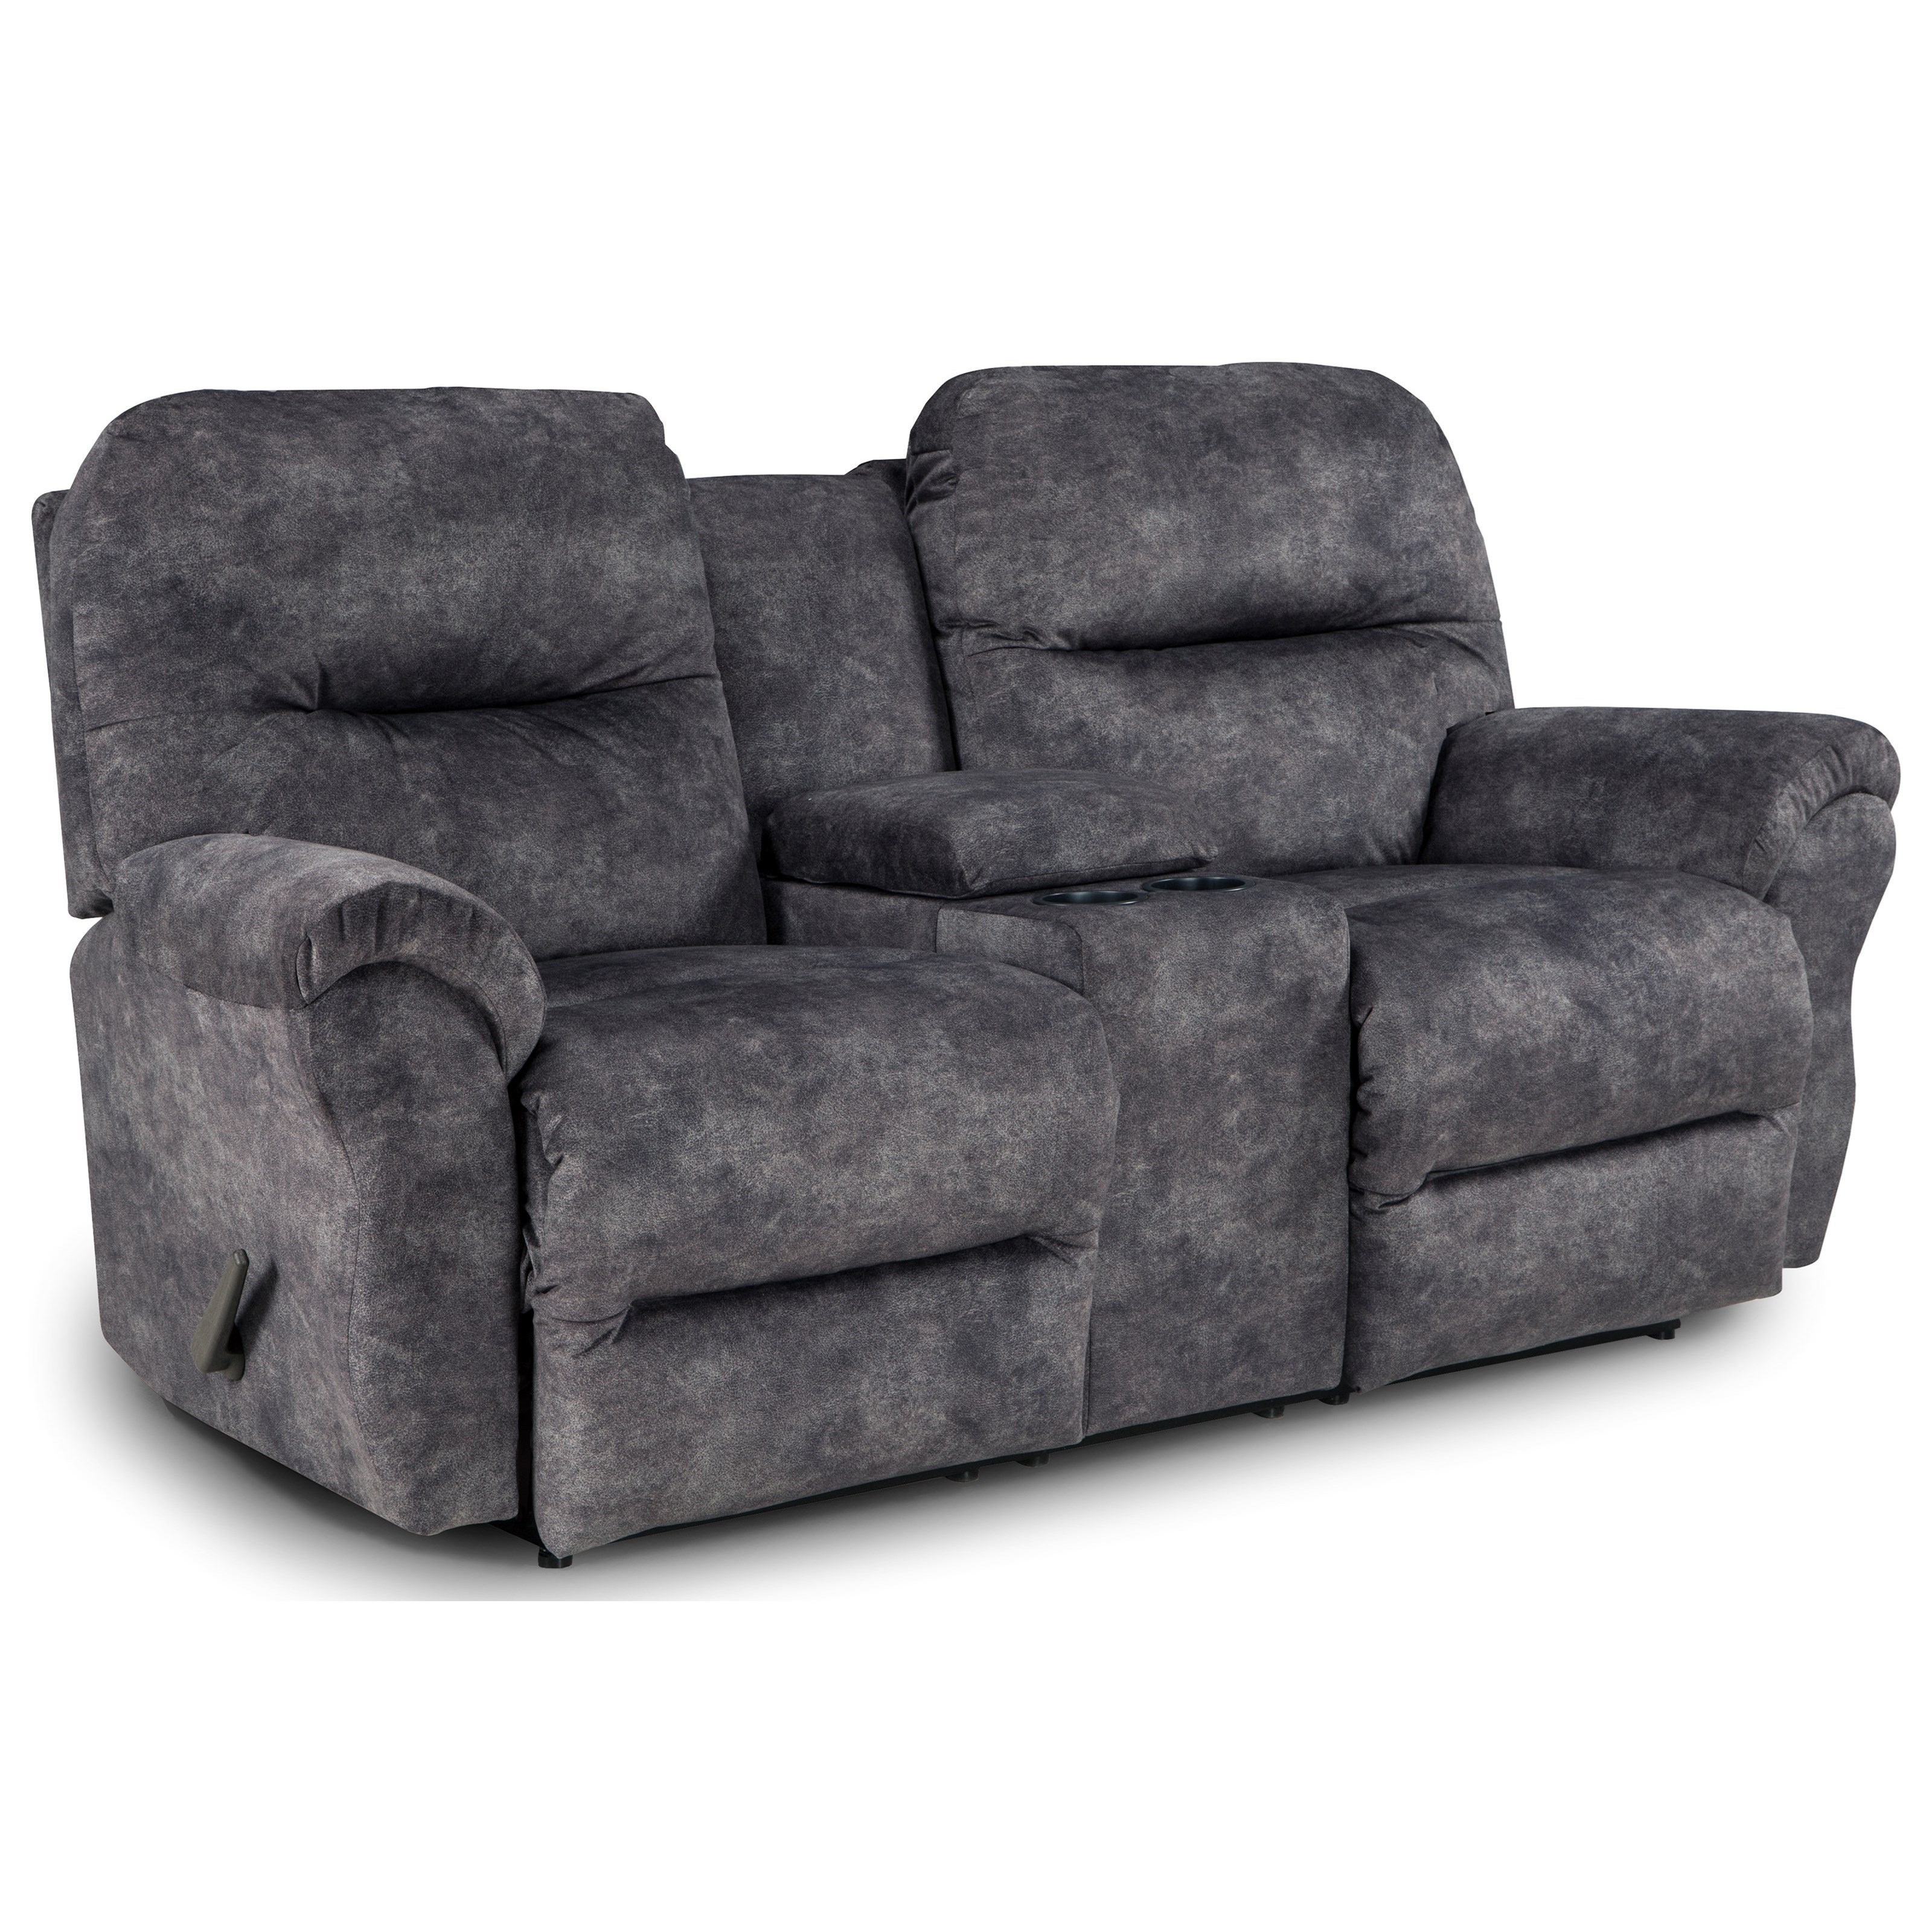 Power Rocking Reclining Loveseat With Storage Console By